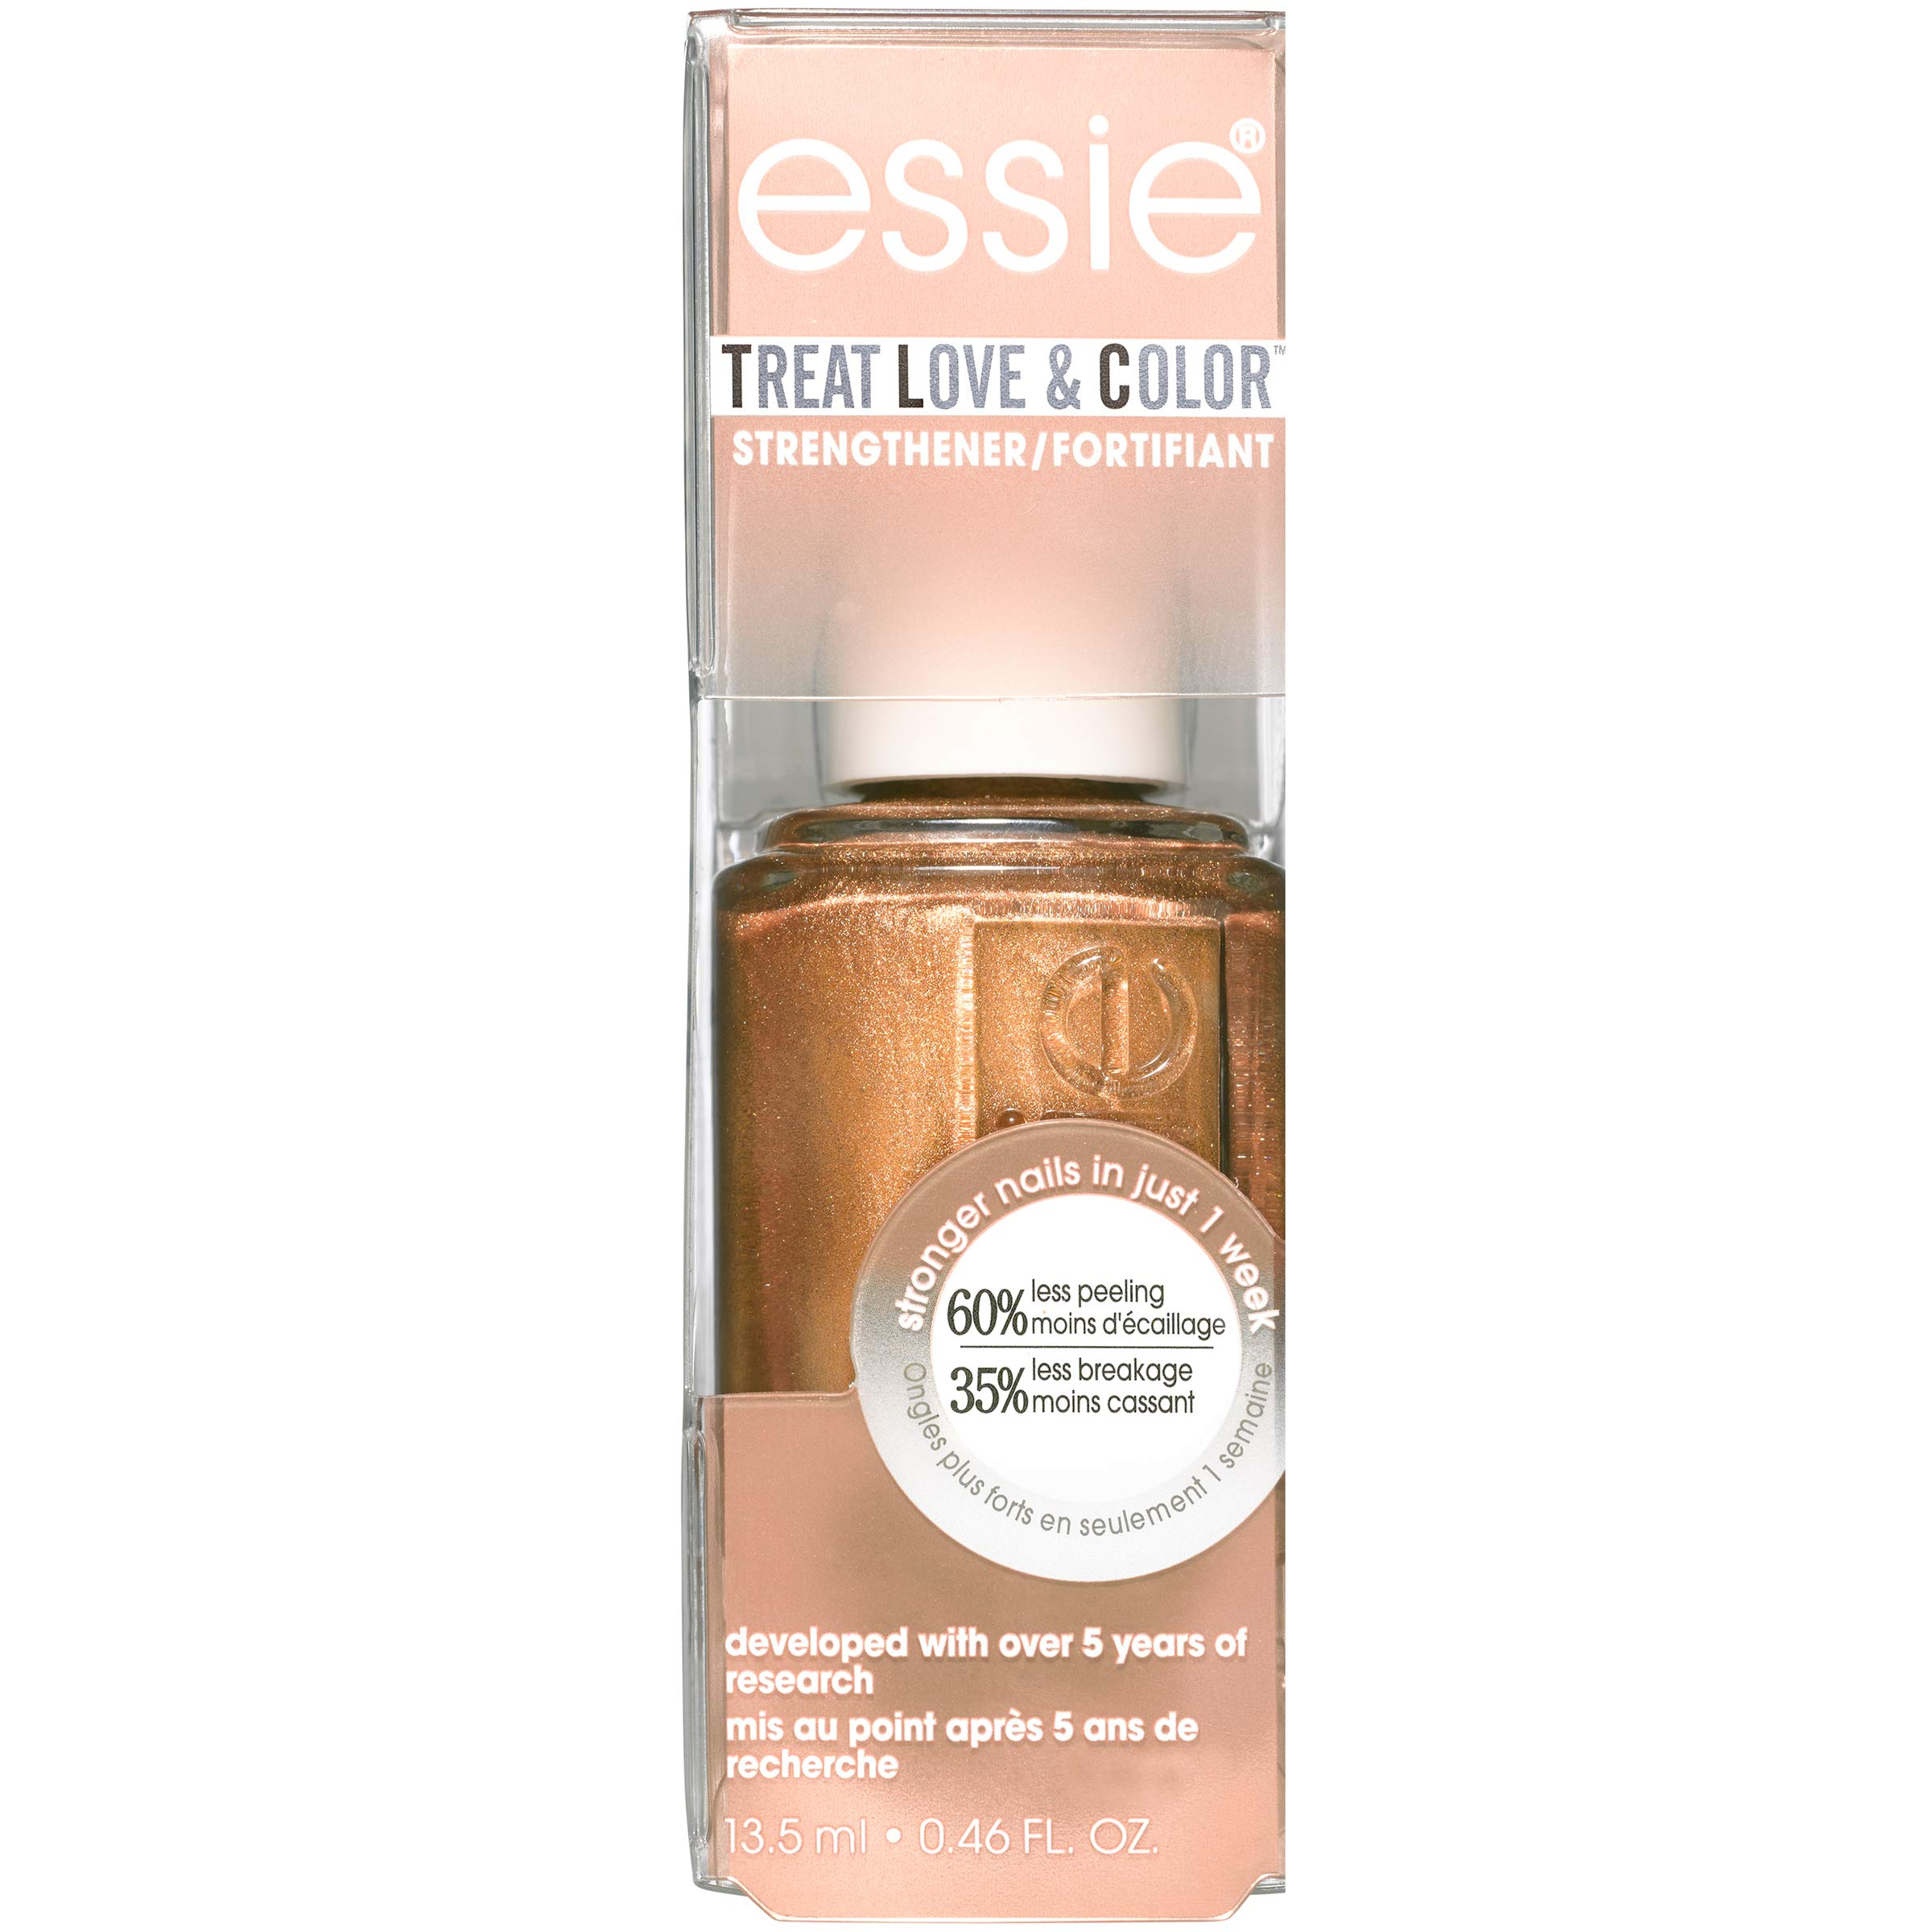 essie Treat Love & Color Nail Polish For Normal To Dry/Brittle Nails, Pep In Your Rep, 0.46 fl. oz.